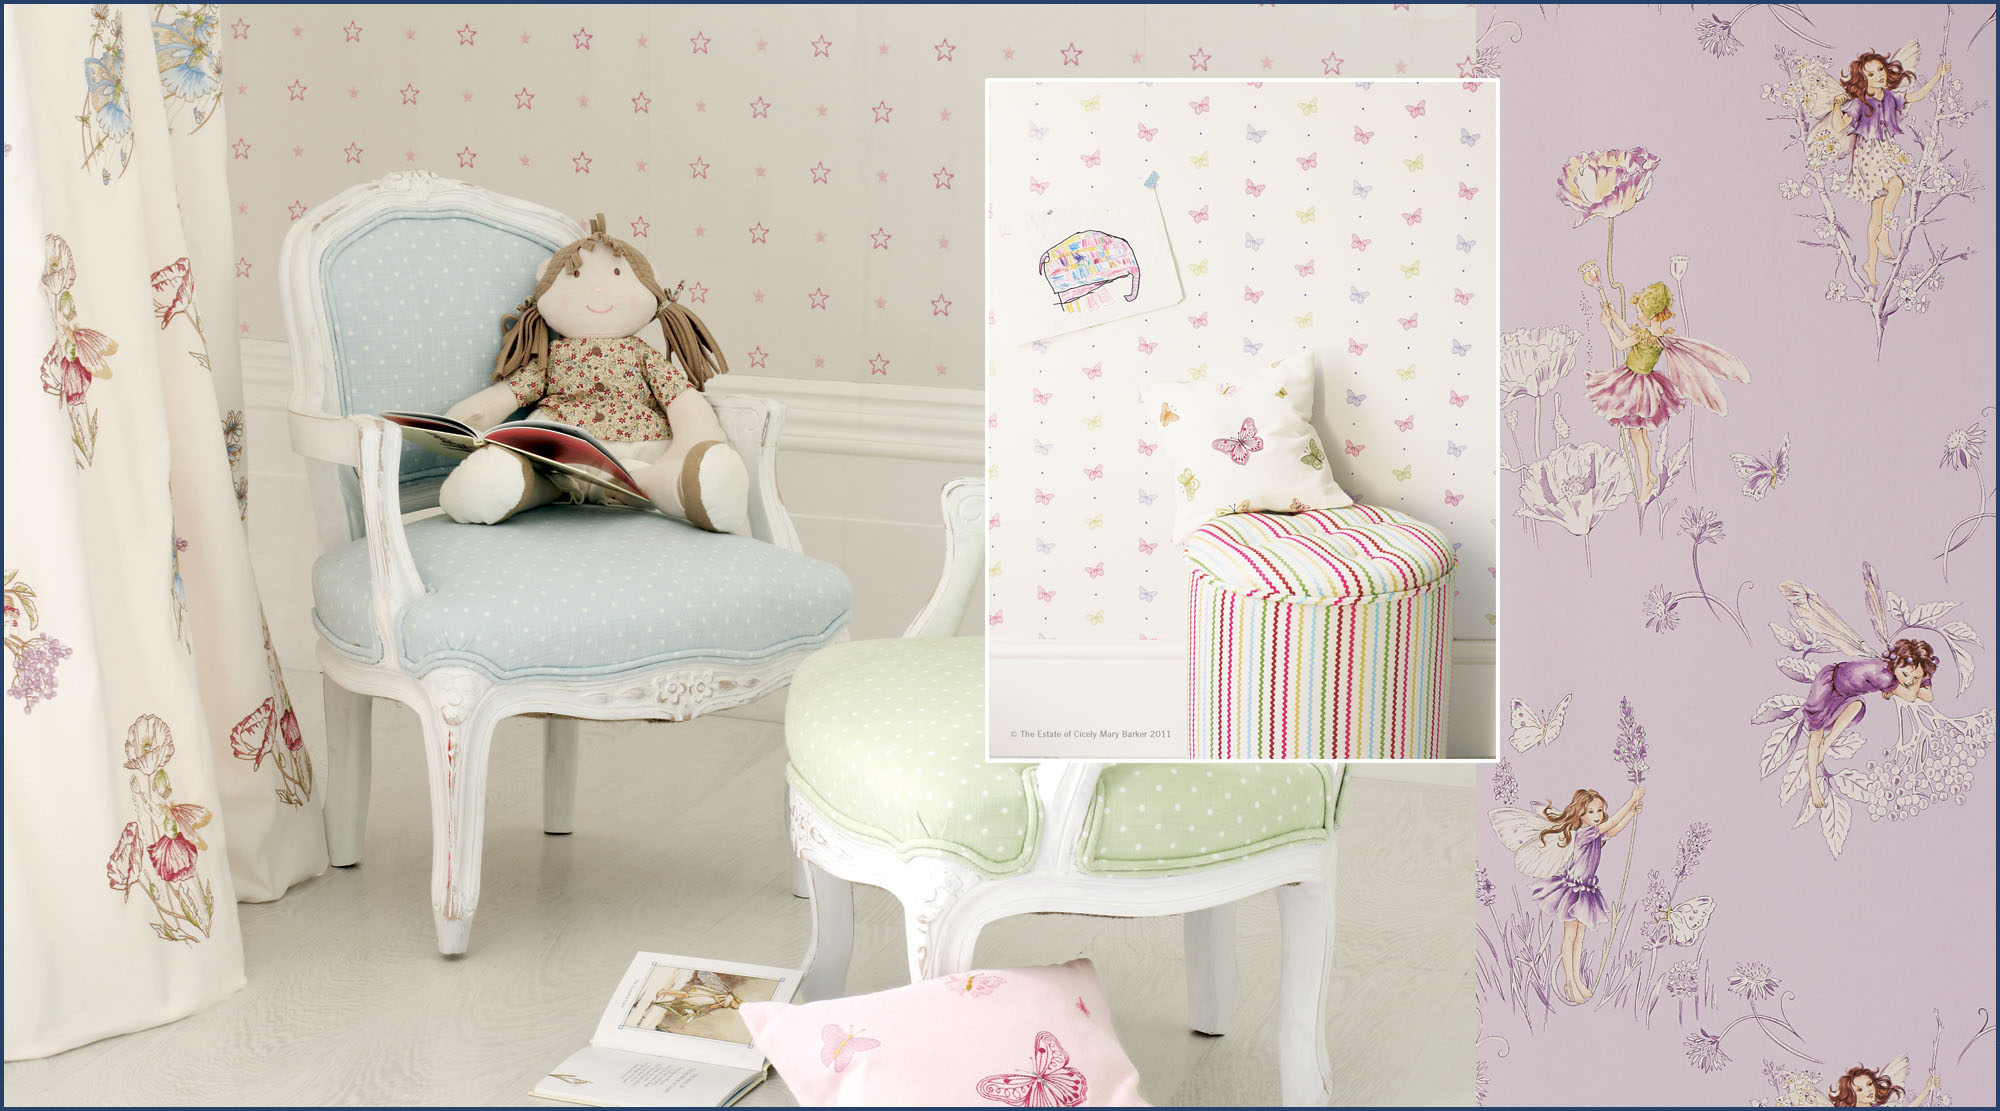 Child's bedroom with Fairies & Butterflies fabrics and wallpapers